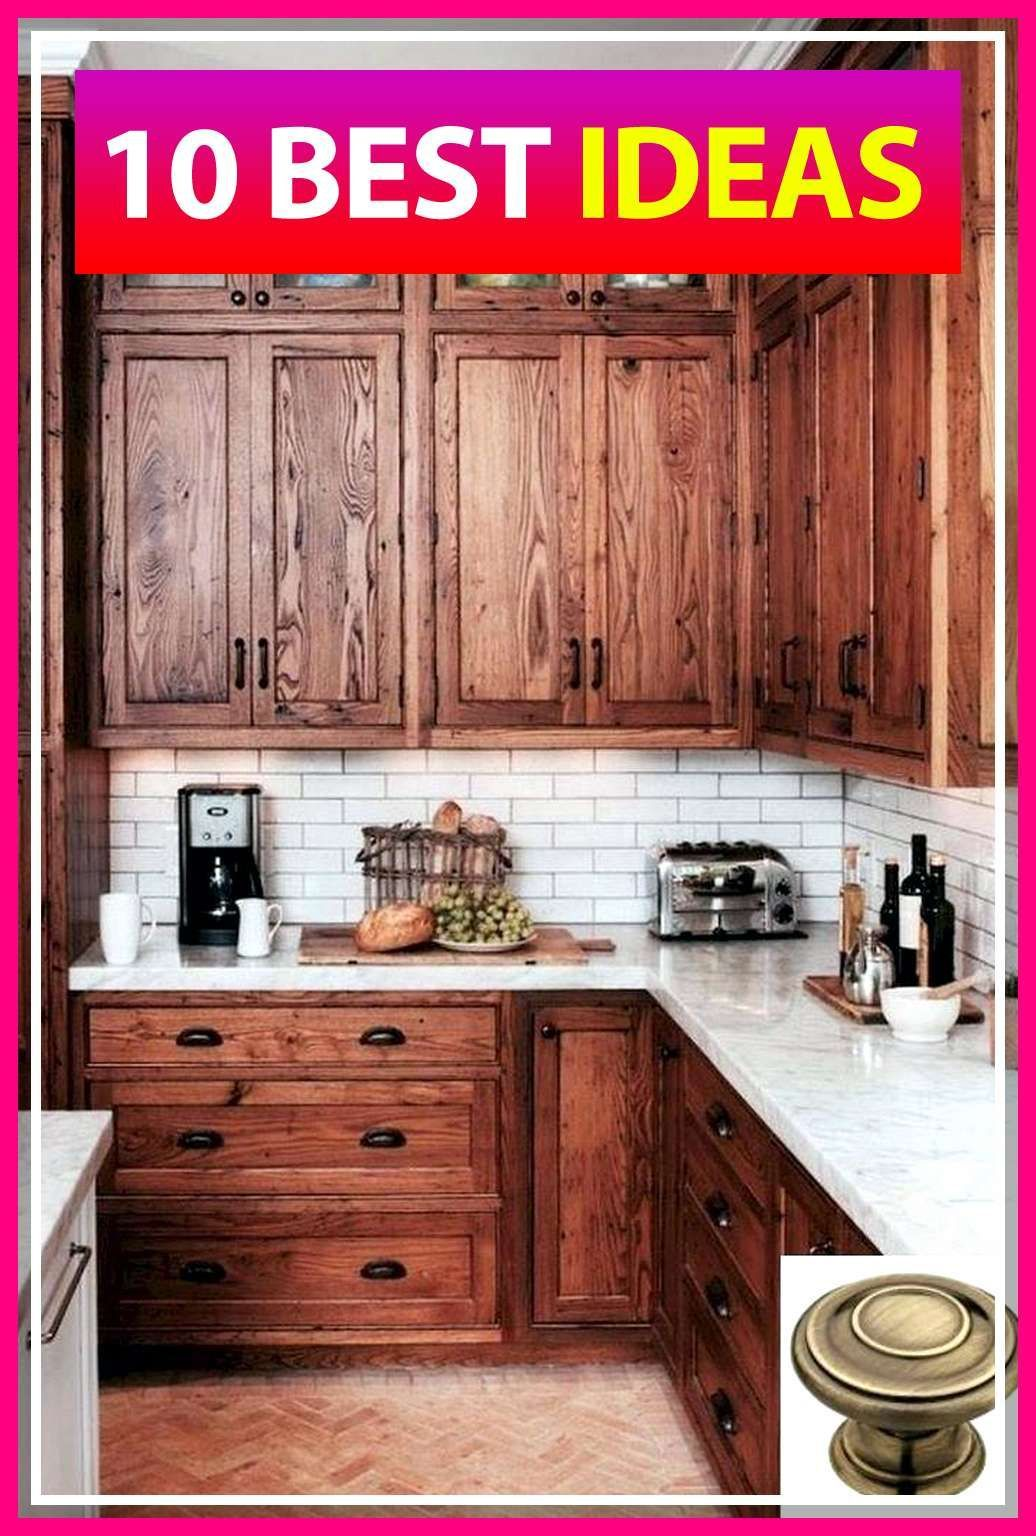 Kitchen Cabinets Refinishing Kits 2021 In 2020 Kitchen Cabinets Decor Timeless Kitchen Rustic Kitchen